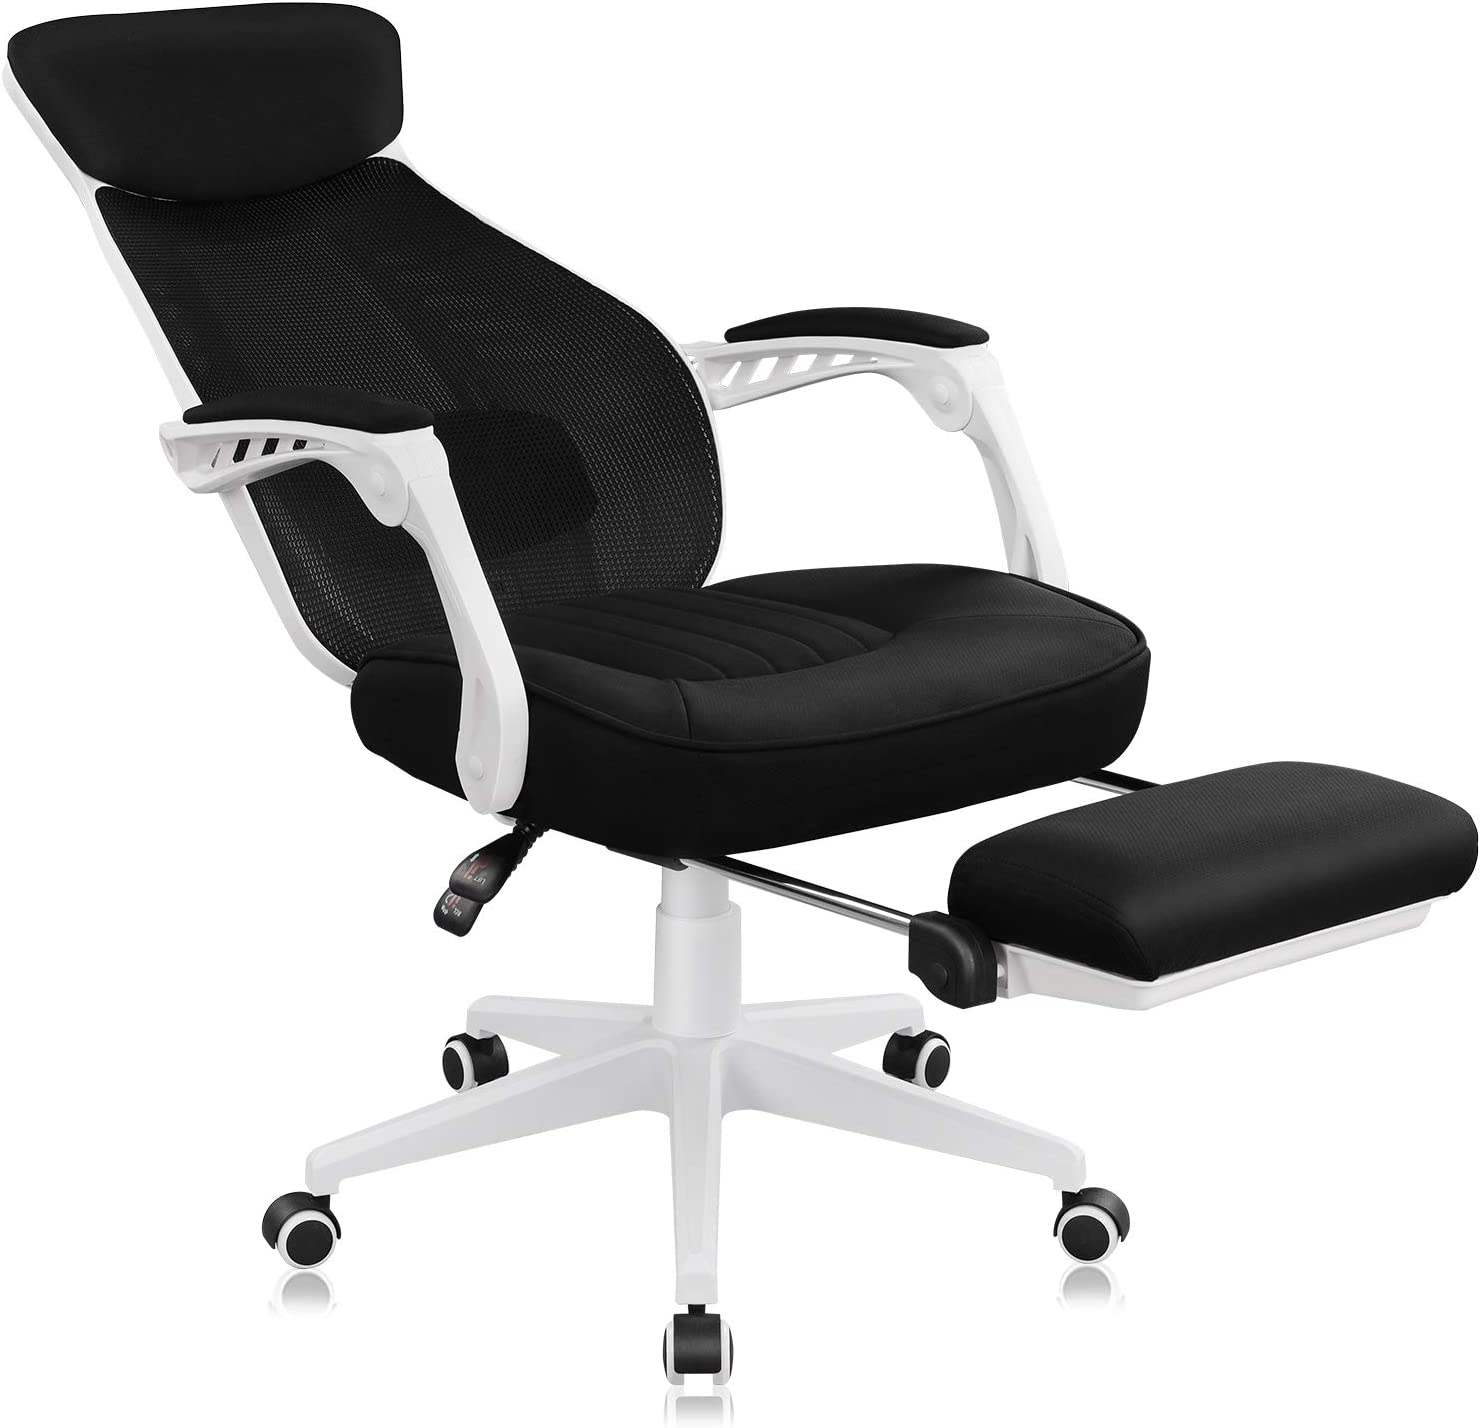 DEVAISE Ergonomics Recliner Office Chair, High Back Mesh Computer Desk Chair with Adjustable Lumbar and Footrest Support,White